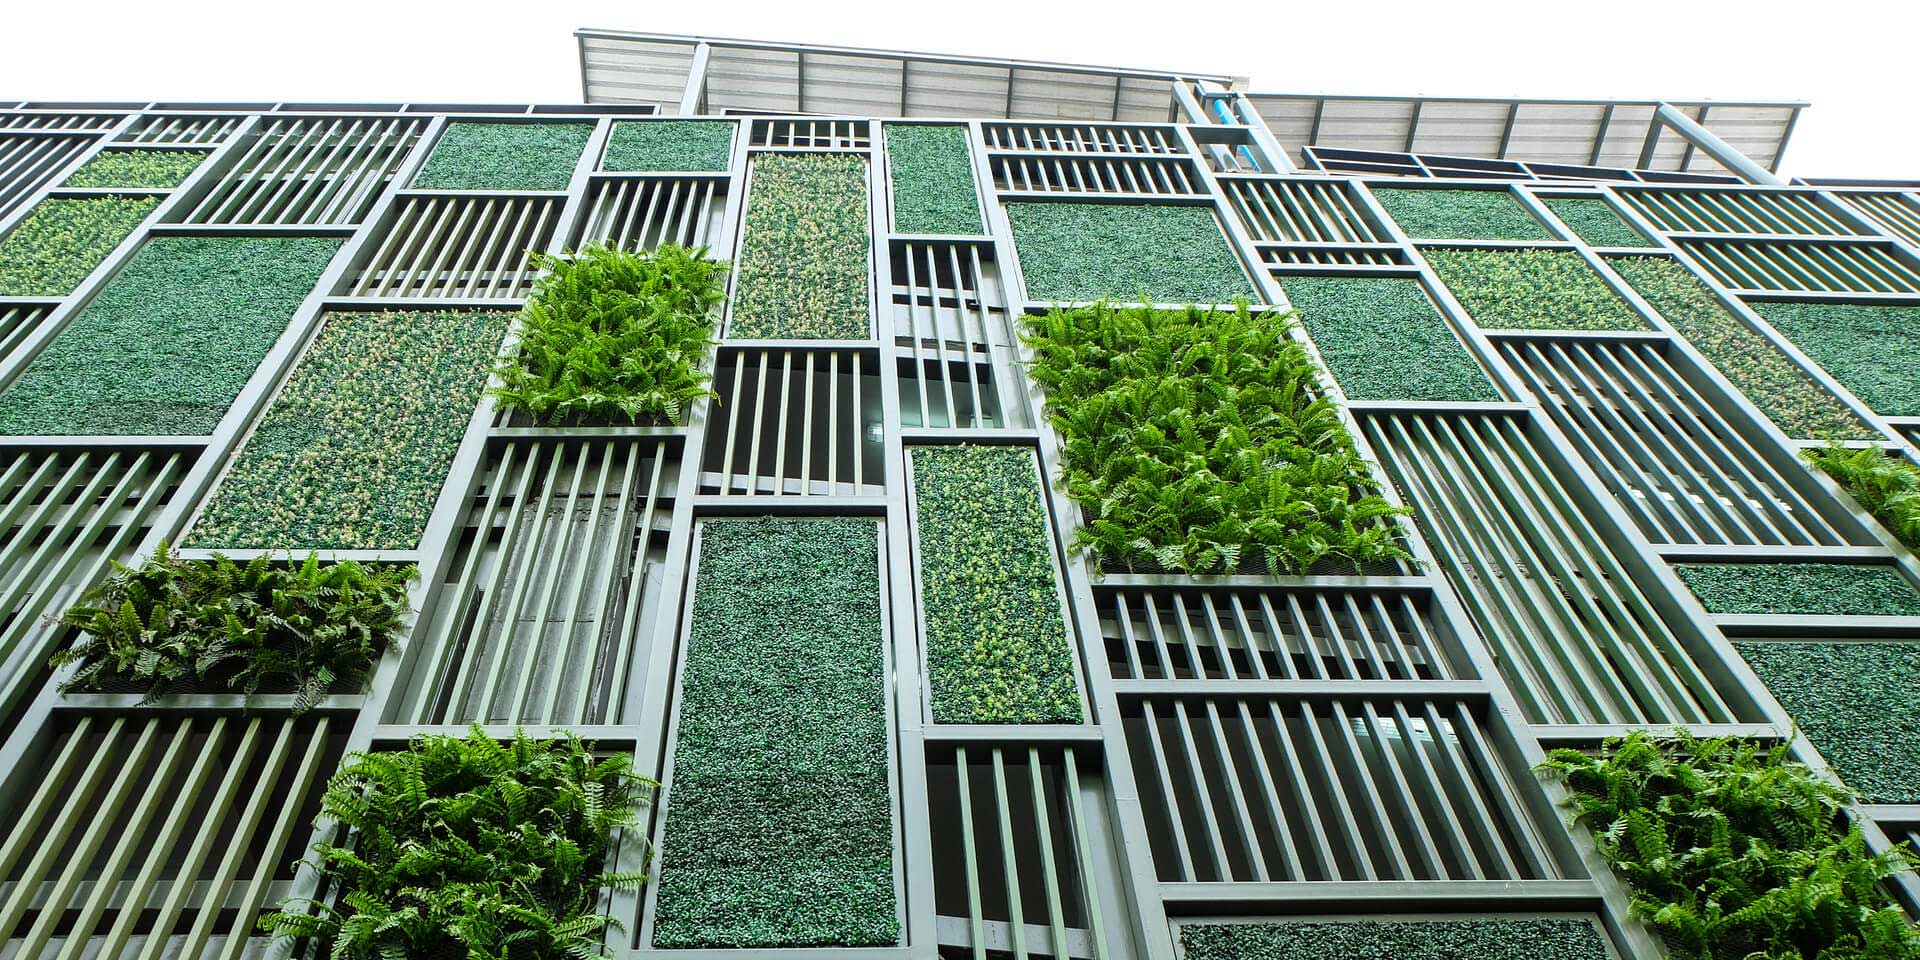 Using leed for green building design in the 21st century for Green design